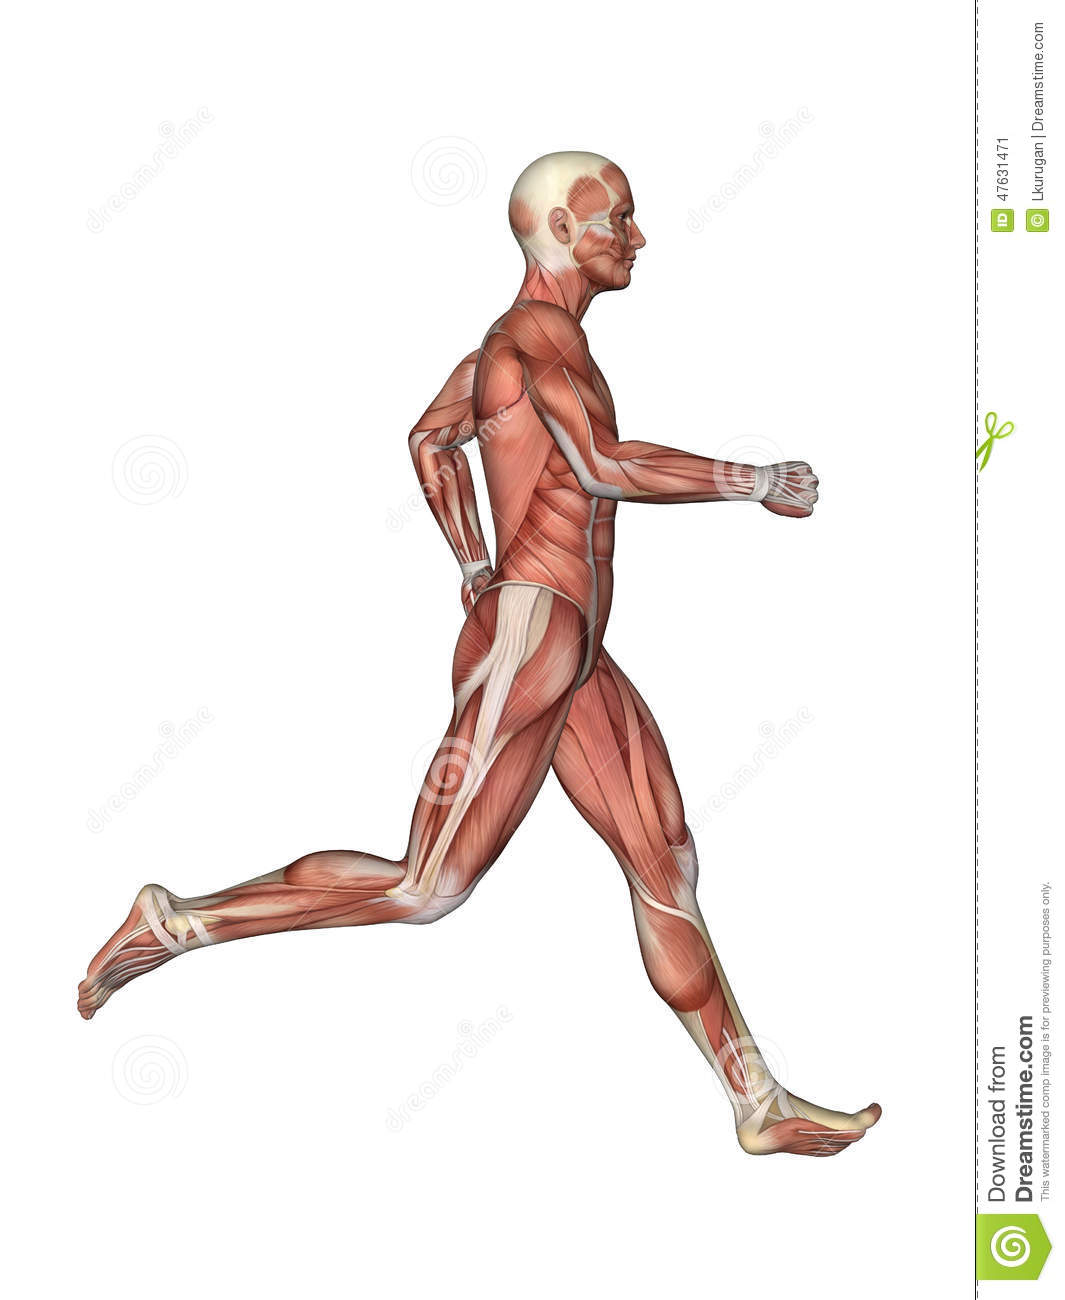 Muscles Of Male Anatomy In Motion Stock Illustration Illustration